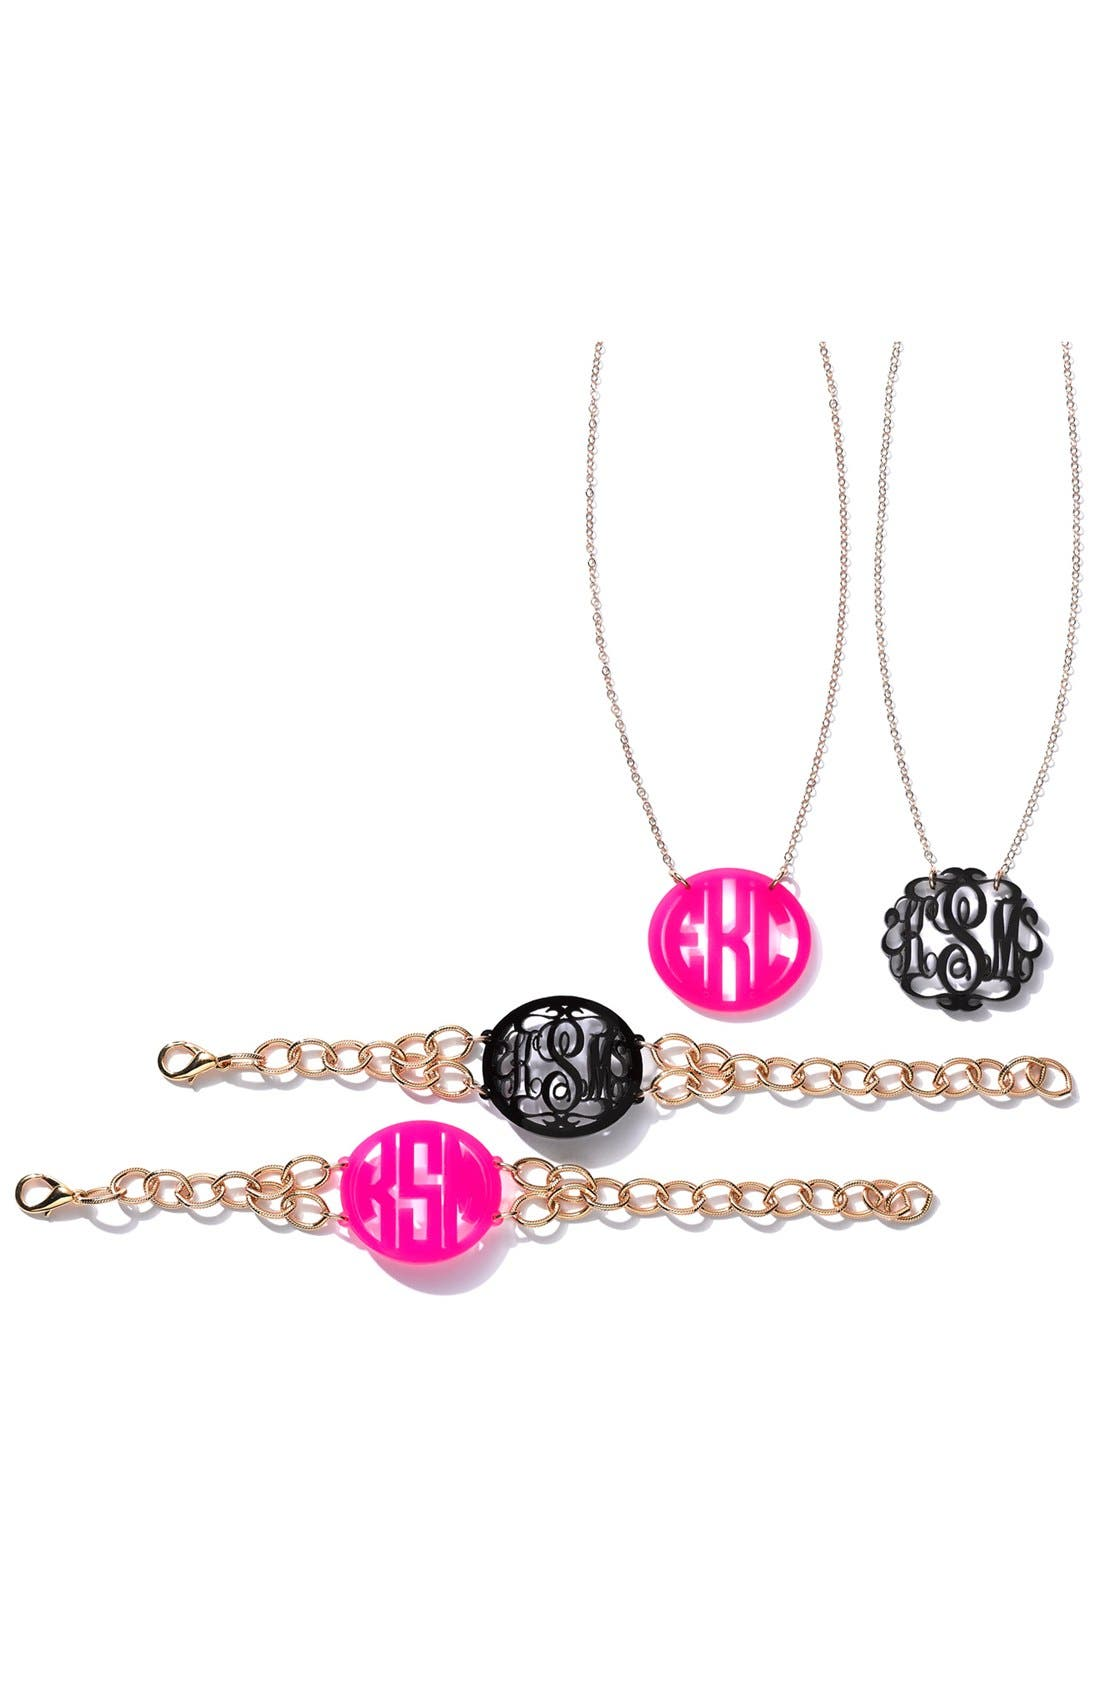 Medium Oval Personalized Monogram Pendant Necklace,                             Alternate thumbnail 2, color,                             670